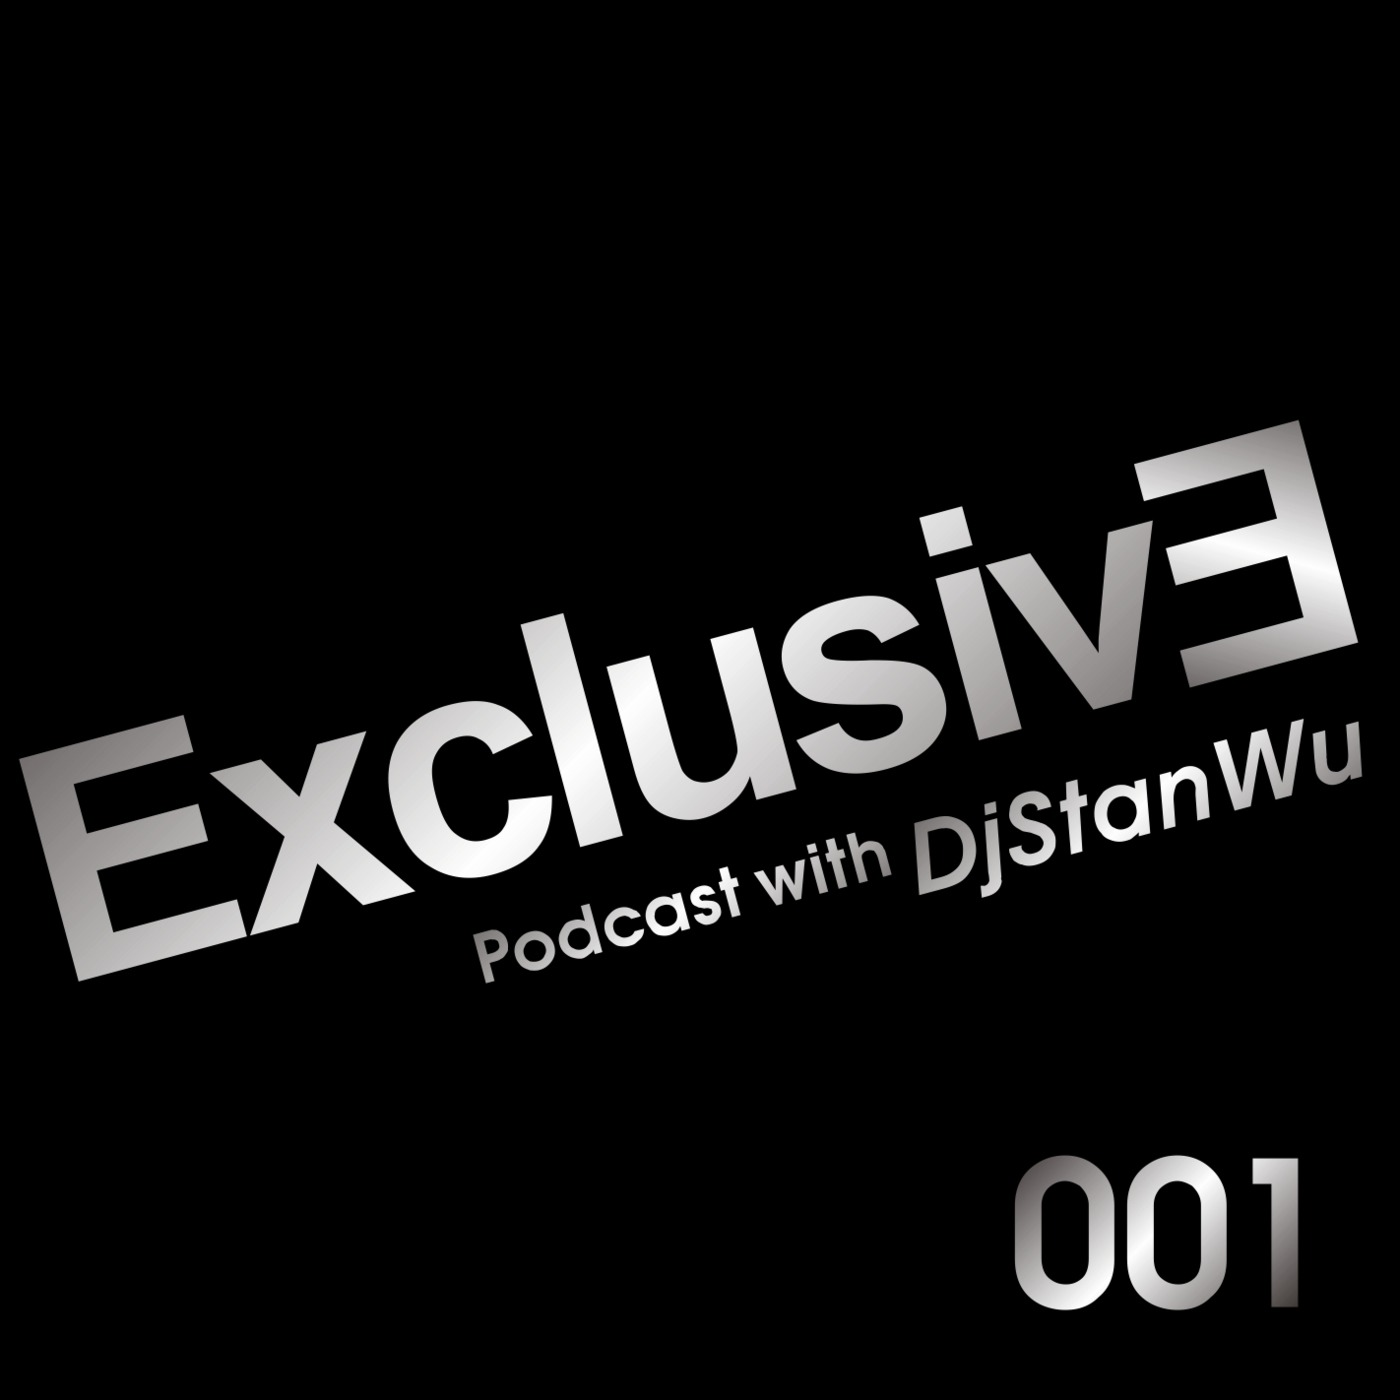 djstanwu's Podcast